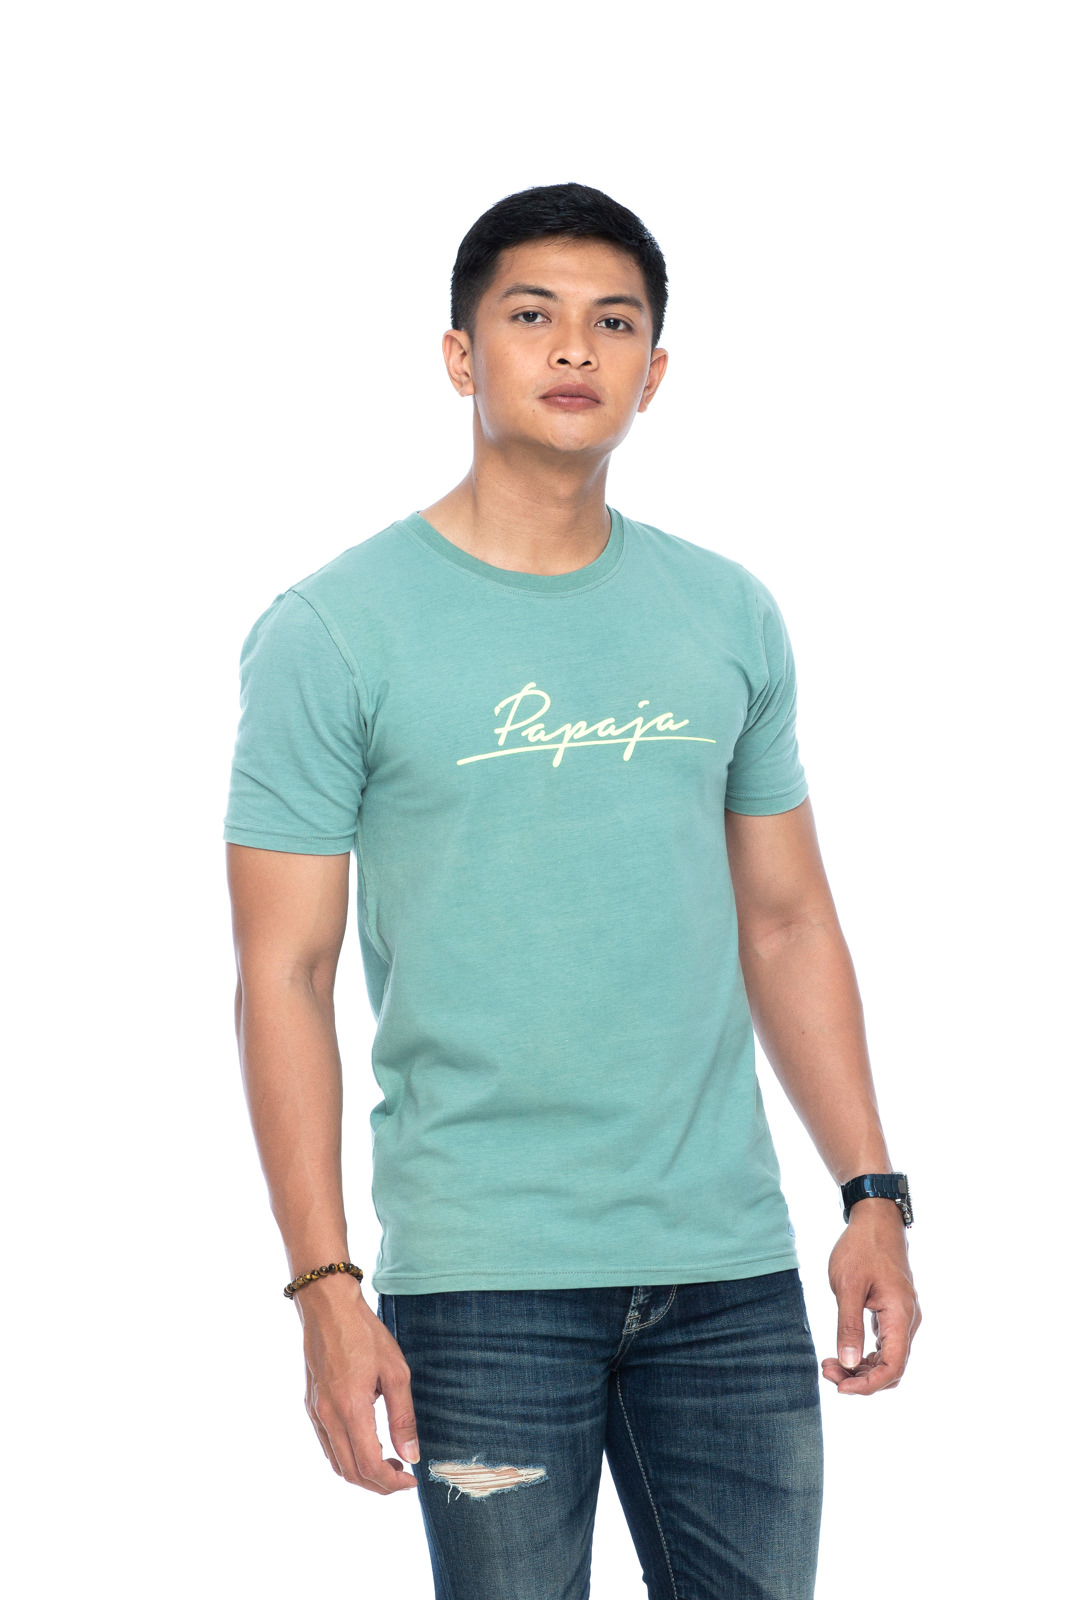 Limited Edition PAPAJA organic t-shirt from PapajaRocks